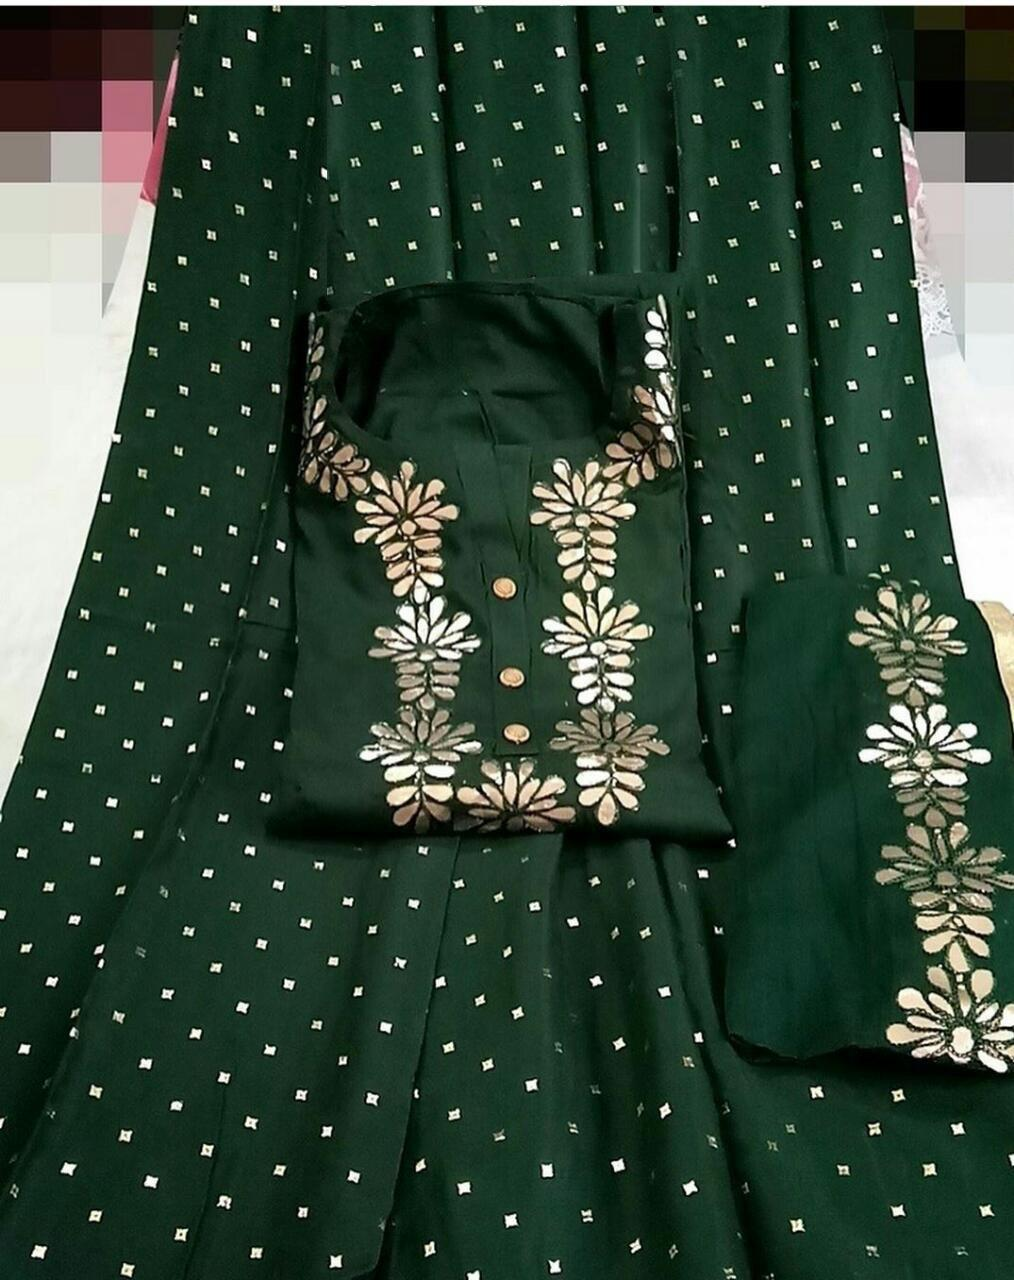 Dark Green Colored Rayon Cotton Kurti Full Stitched Palazo With Najmeen Dupatta For Party Wear VT3034102C